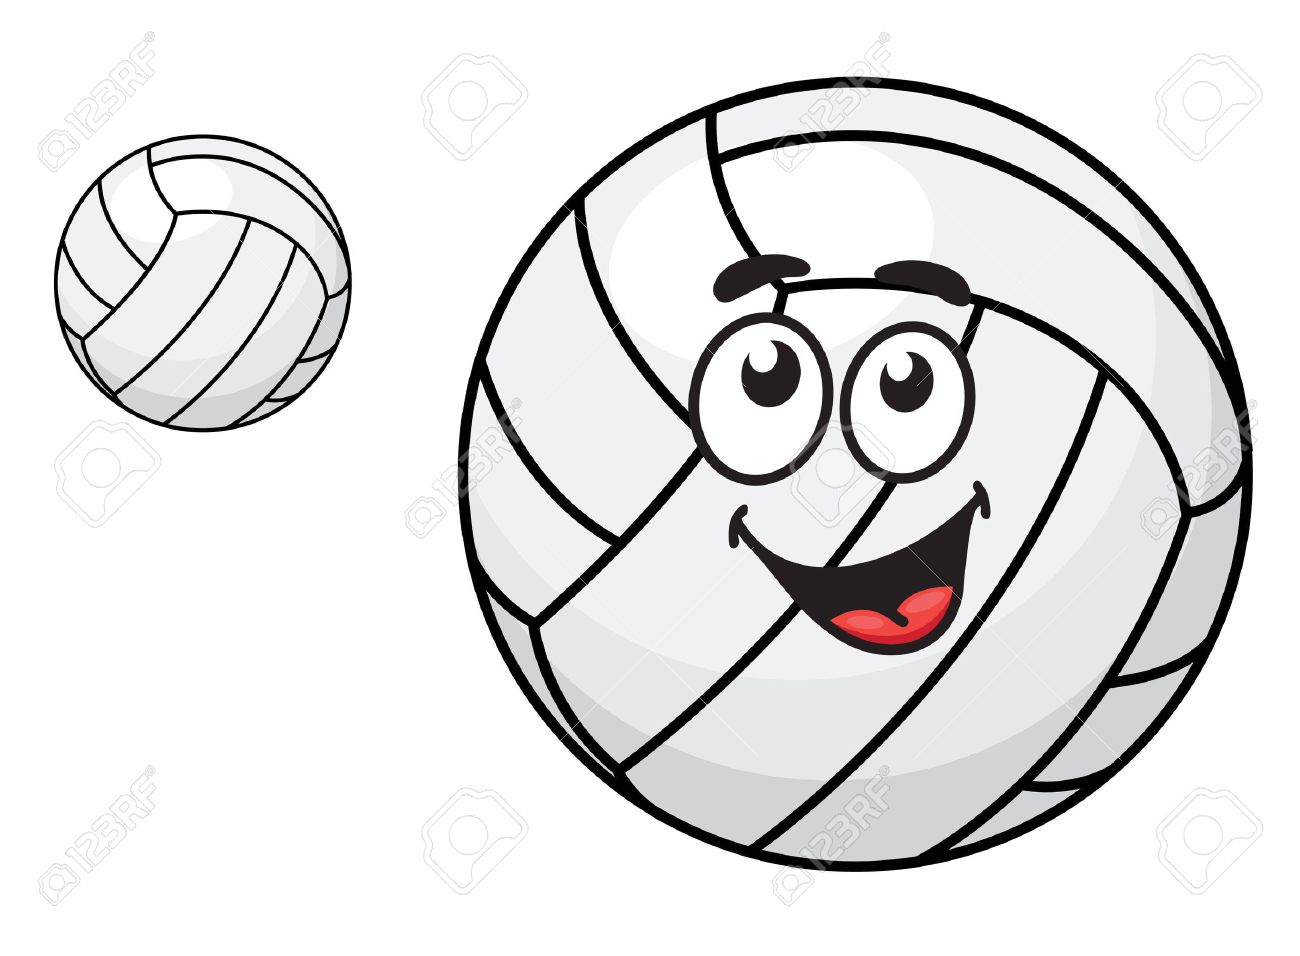 1300x956 Two Volleyballs, One With A Happy Smiling Face And Other Without